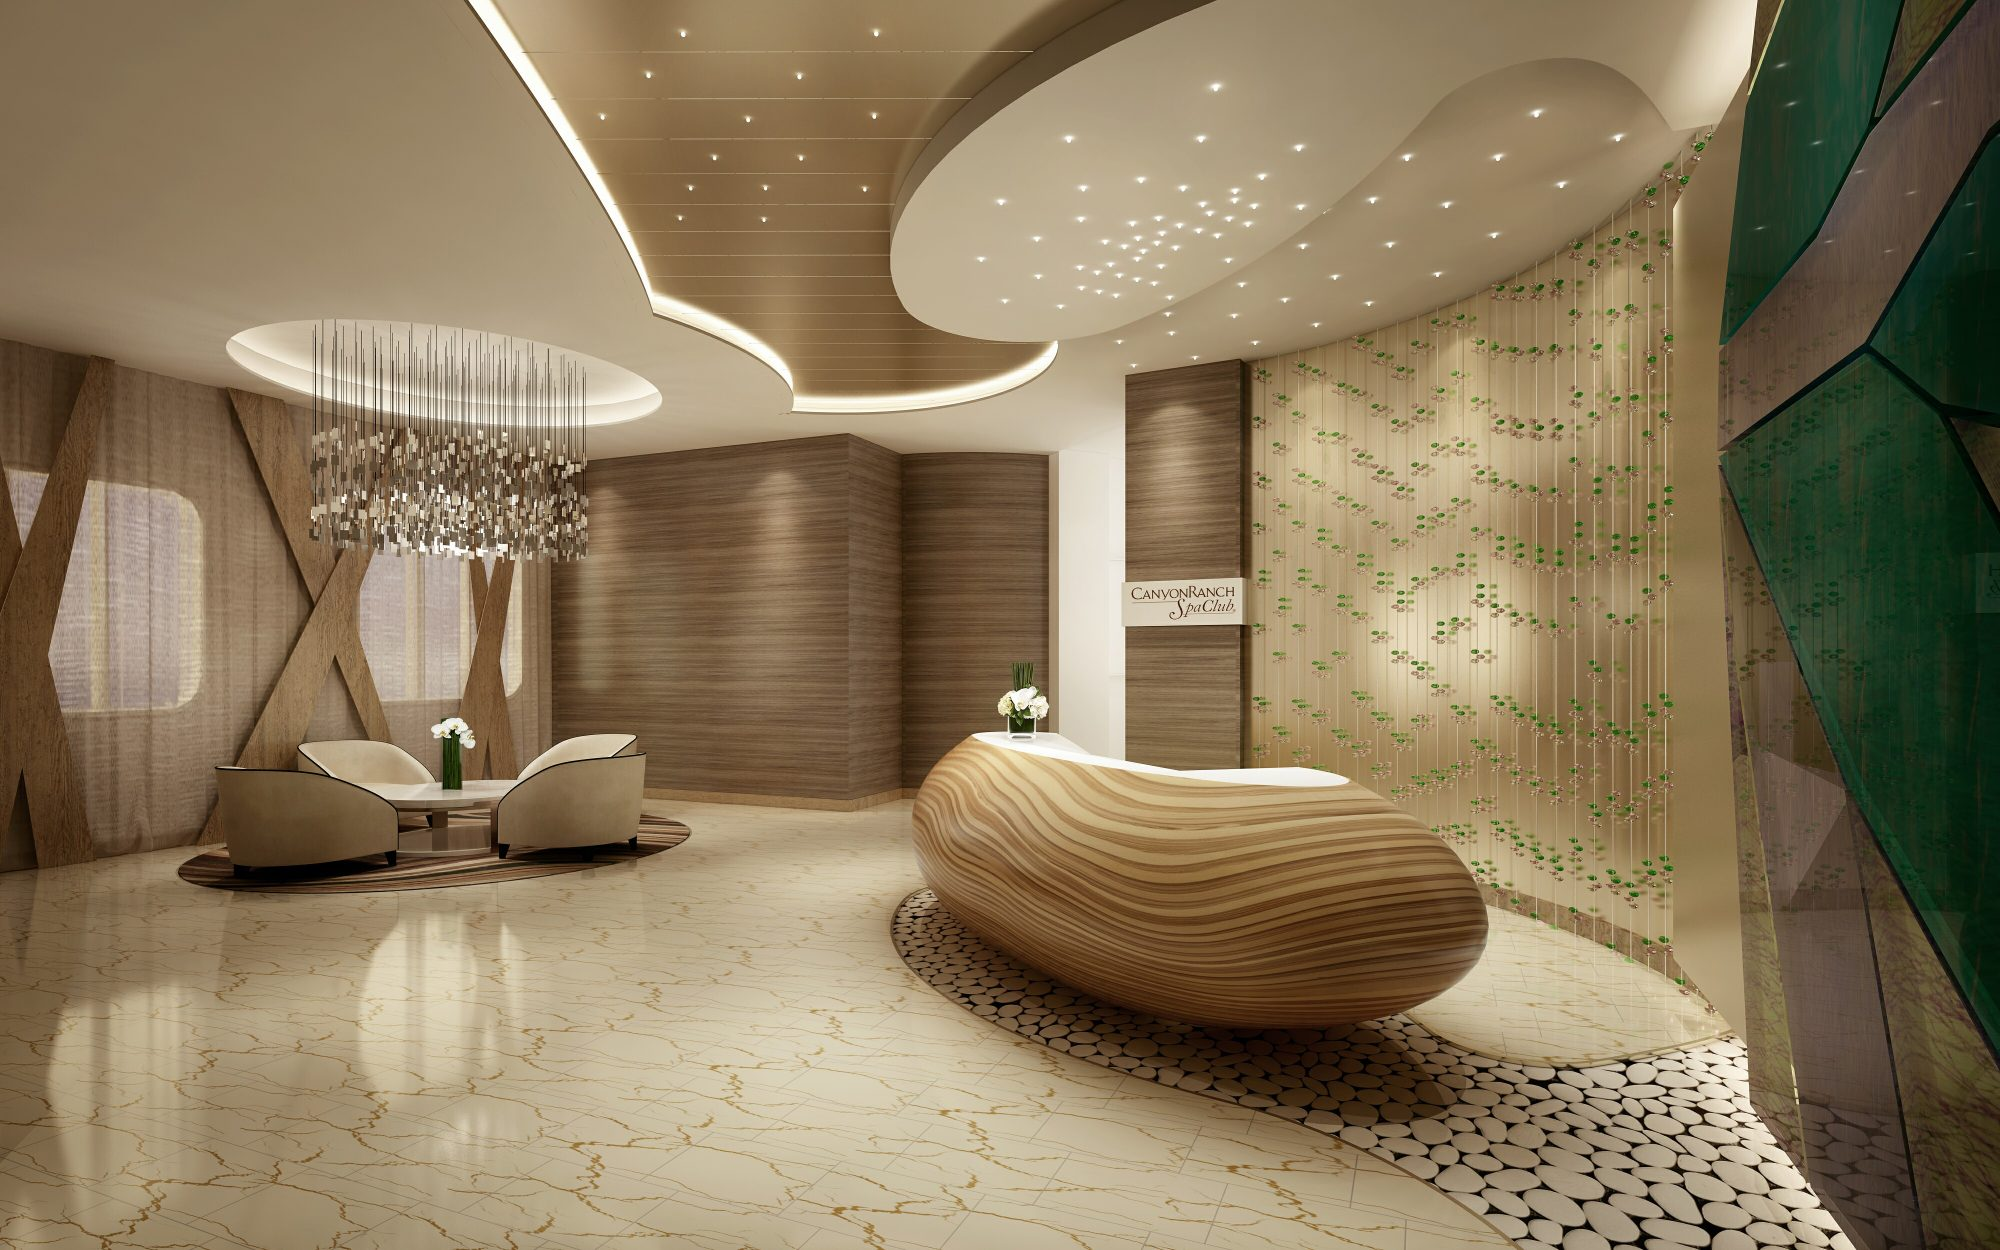 Regent Seven Seas Explorer to Debut Lavish New Spa Concept with Canyon Ranch